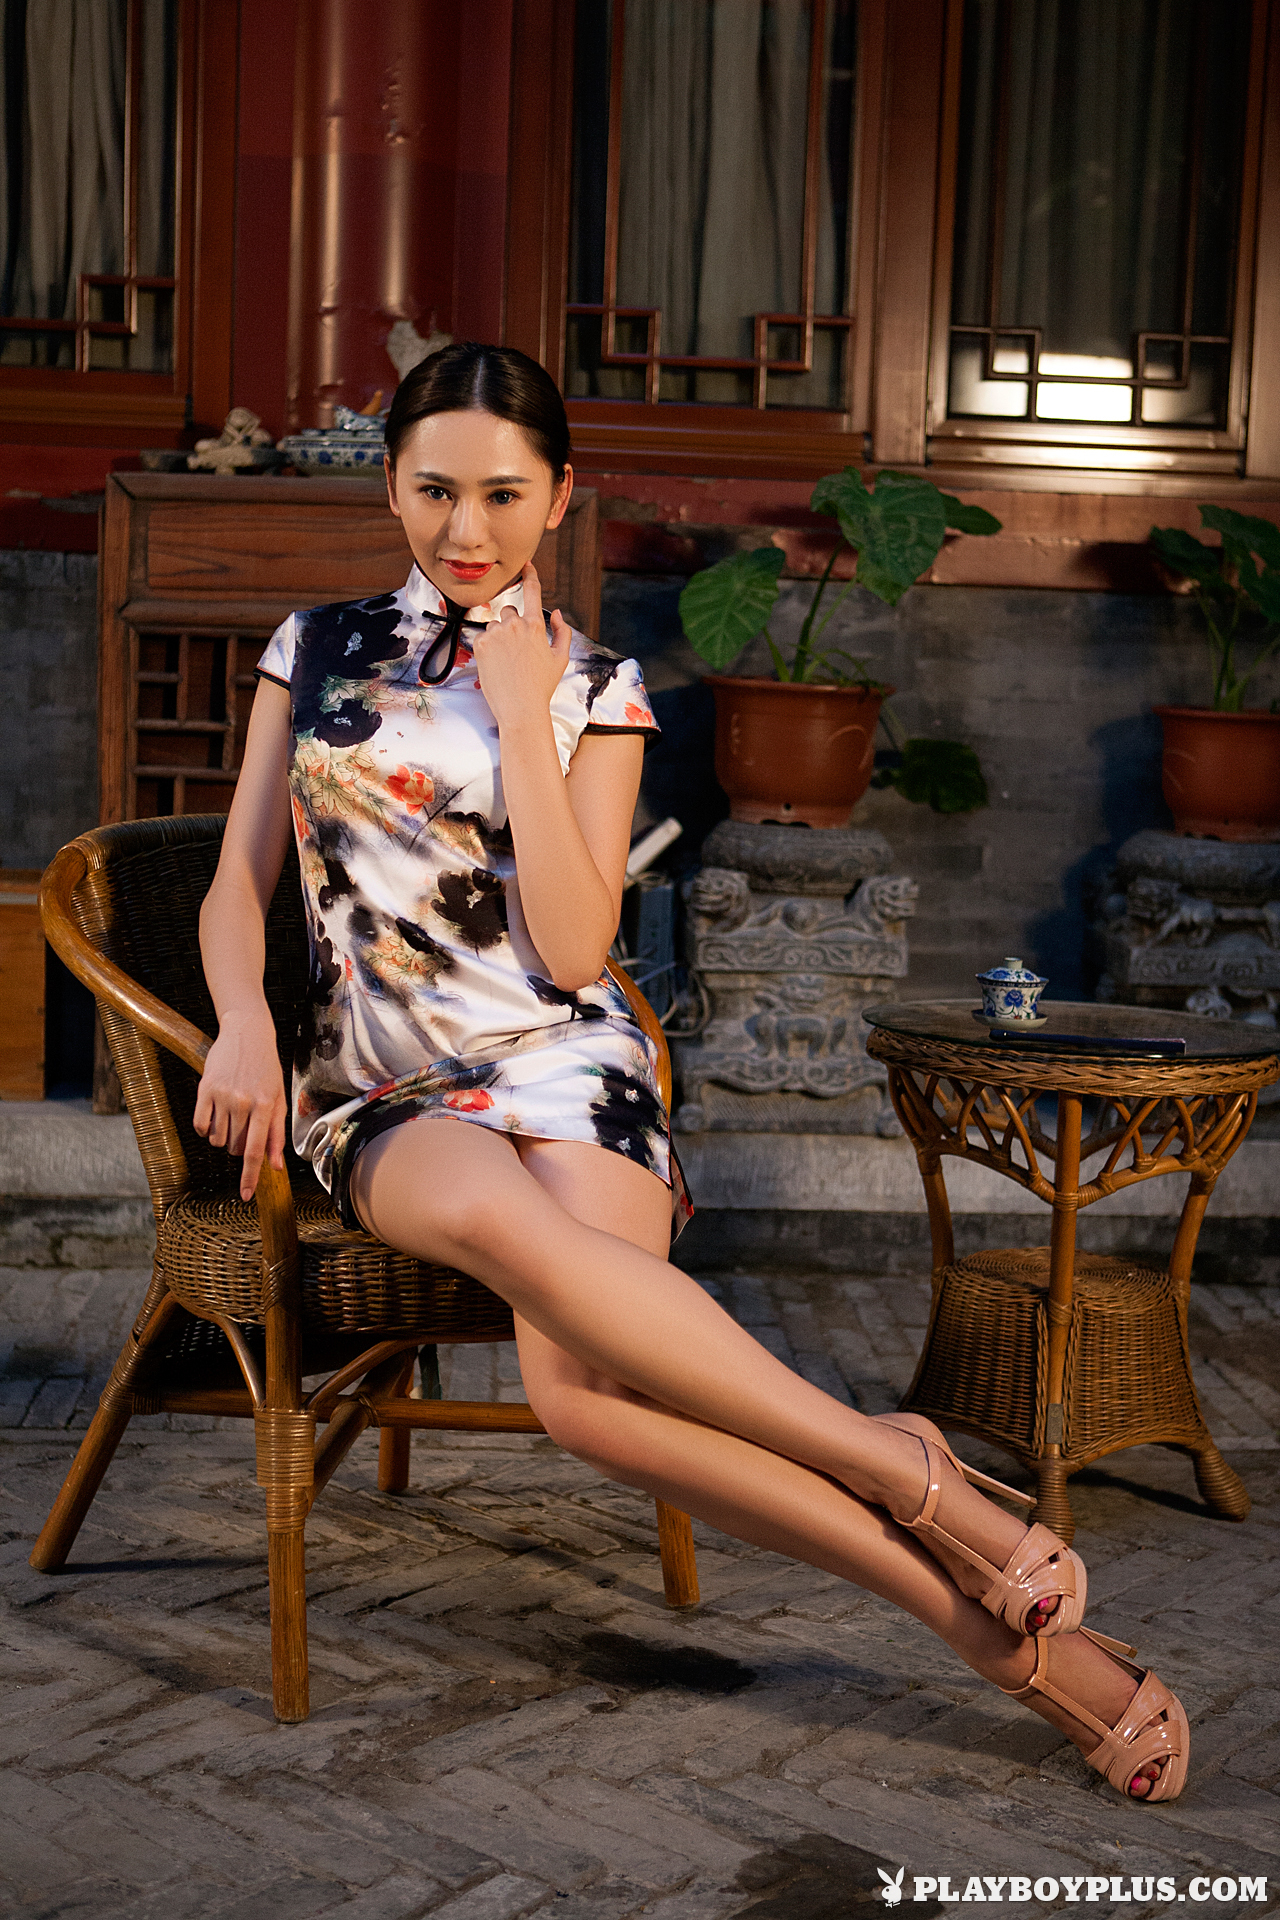 wu-muxi-nude-chinese-girl-short-dress-playboy-04